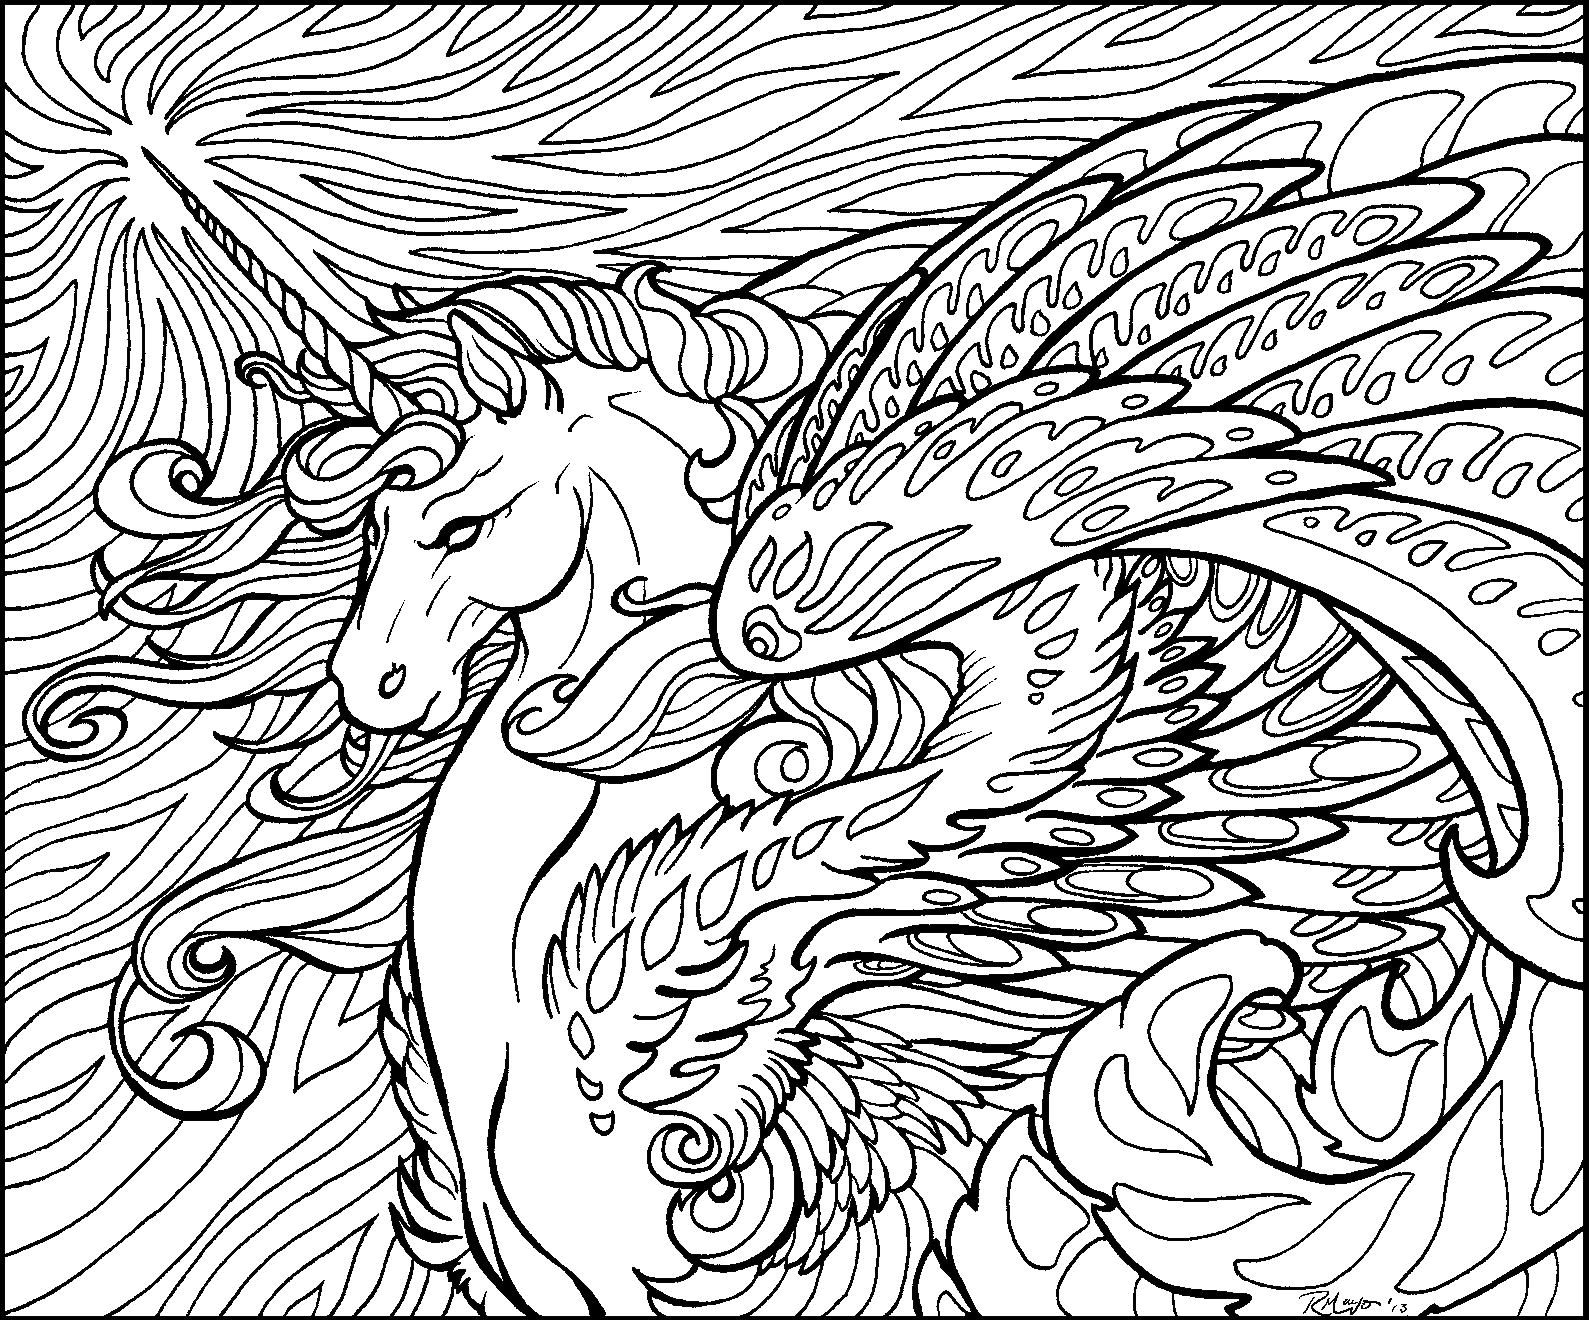 Star Wave Unicorn Lineart By Rachaelm5deviantart On DeviantART